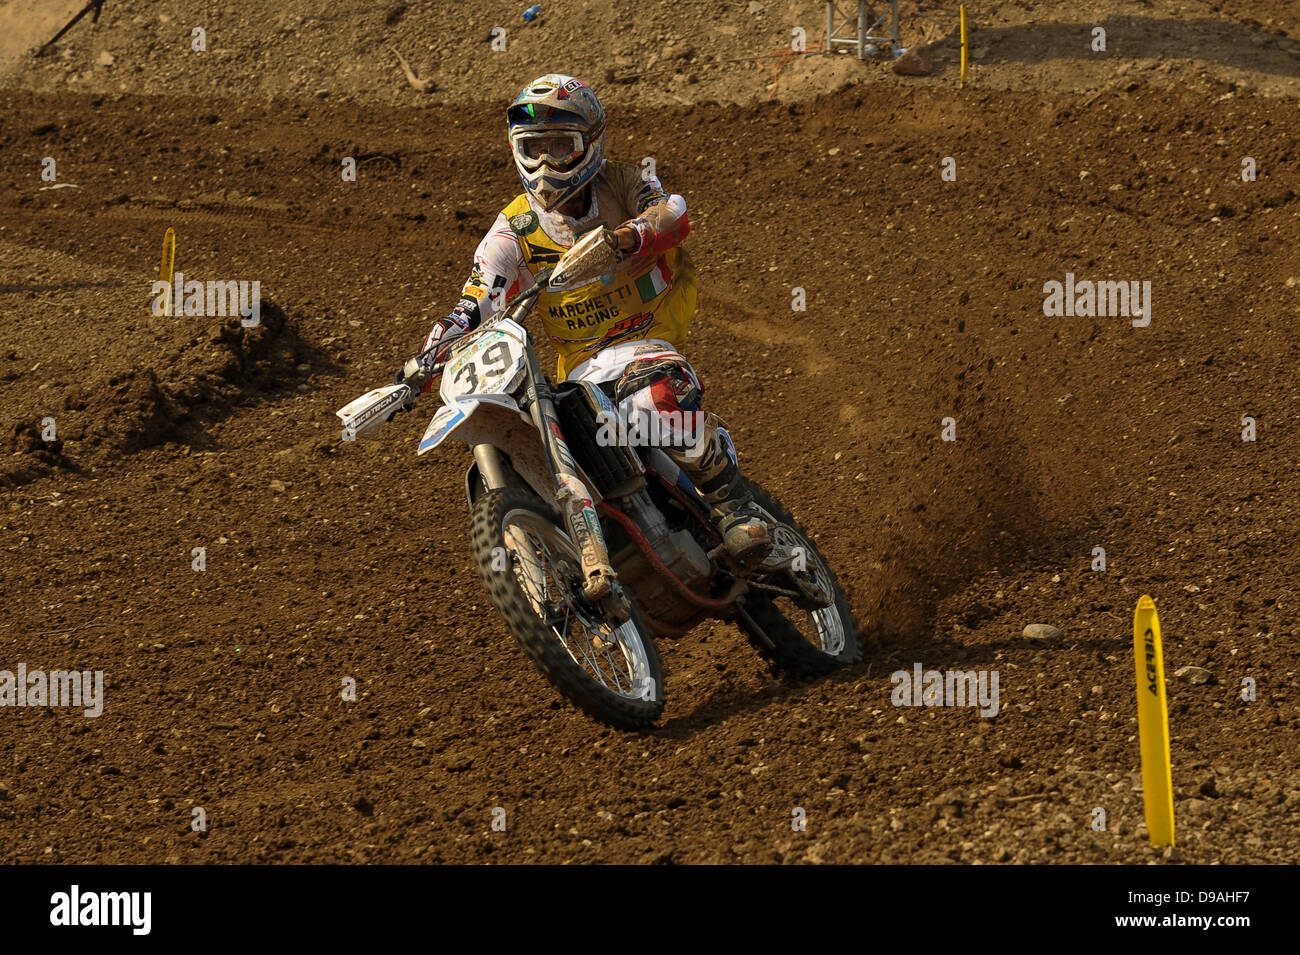 Maggiora, Italy. 16th June, 2013. Number 39 Davide Guarneri during the MX1 World Motocross Championships from Maggiora. - Stock Image